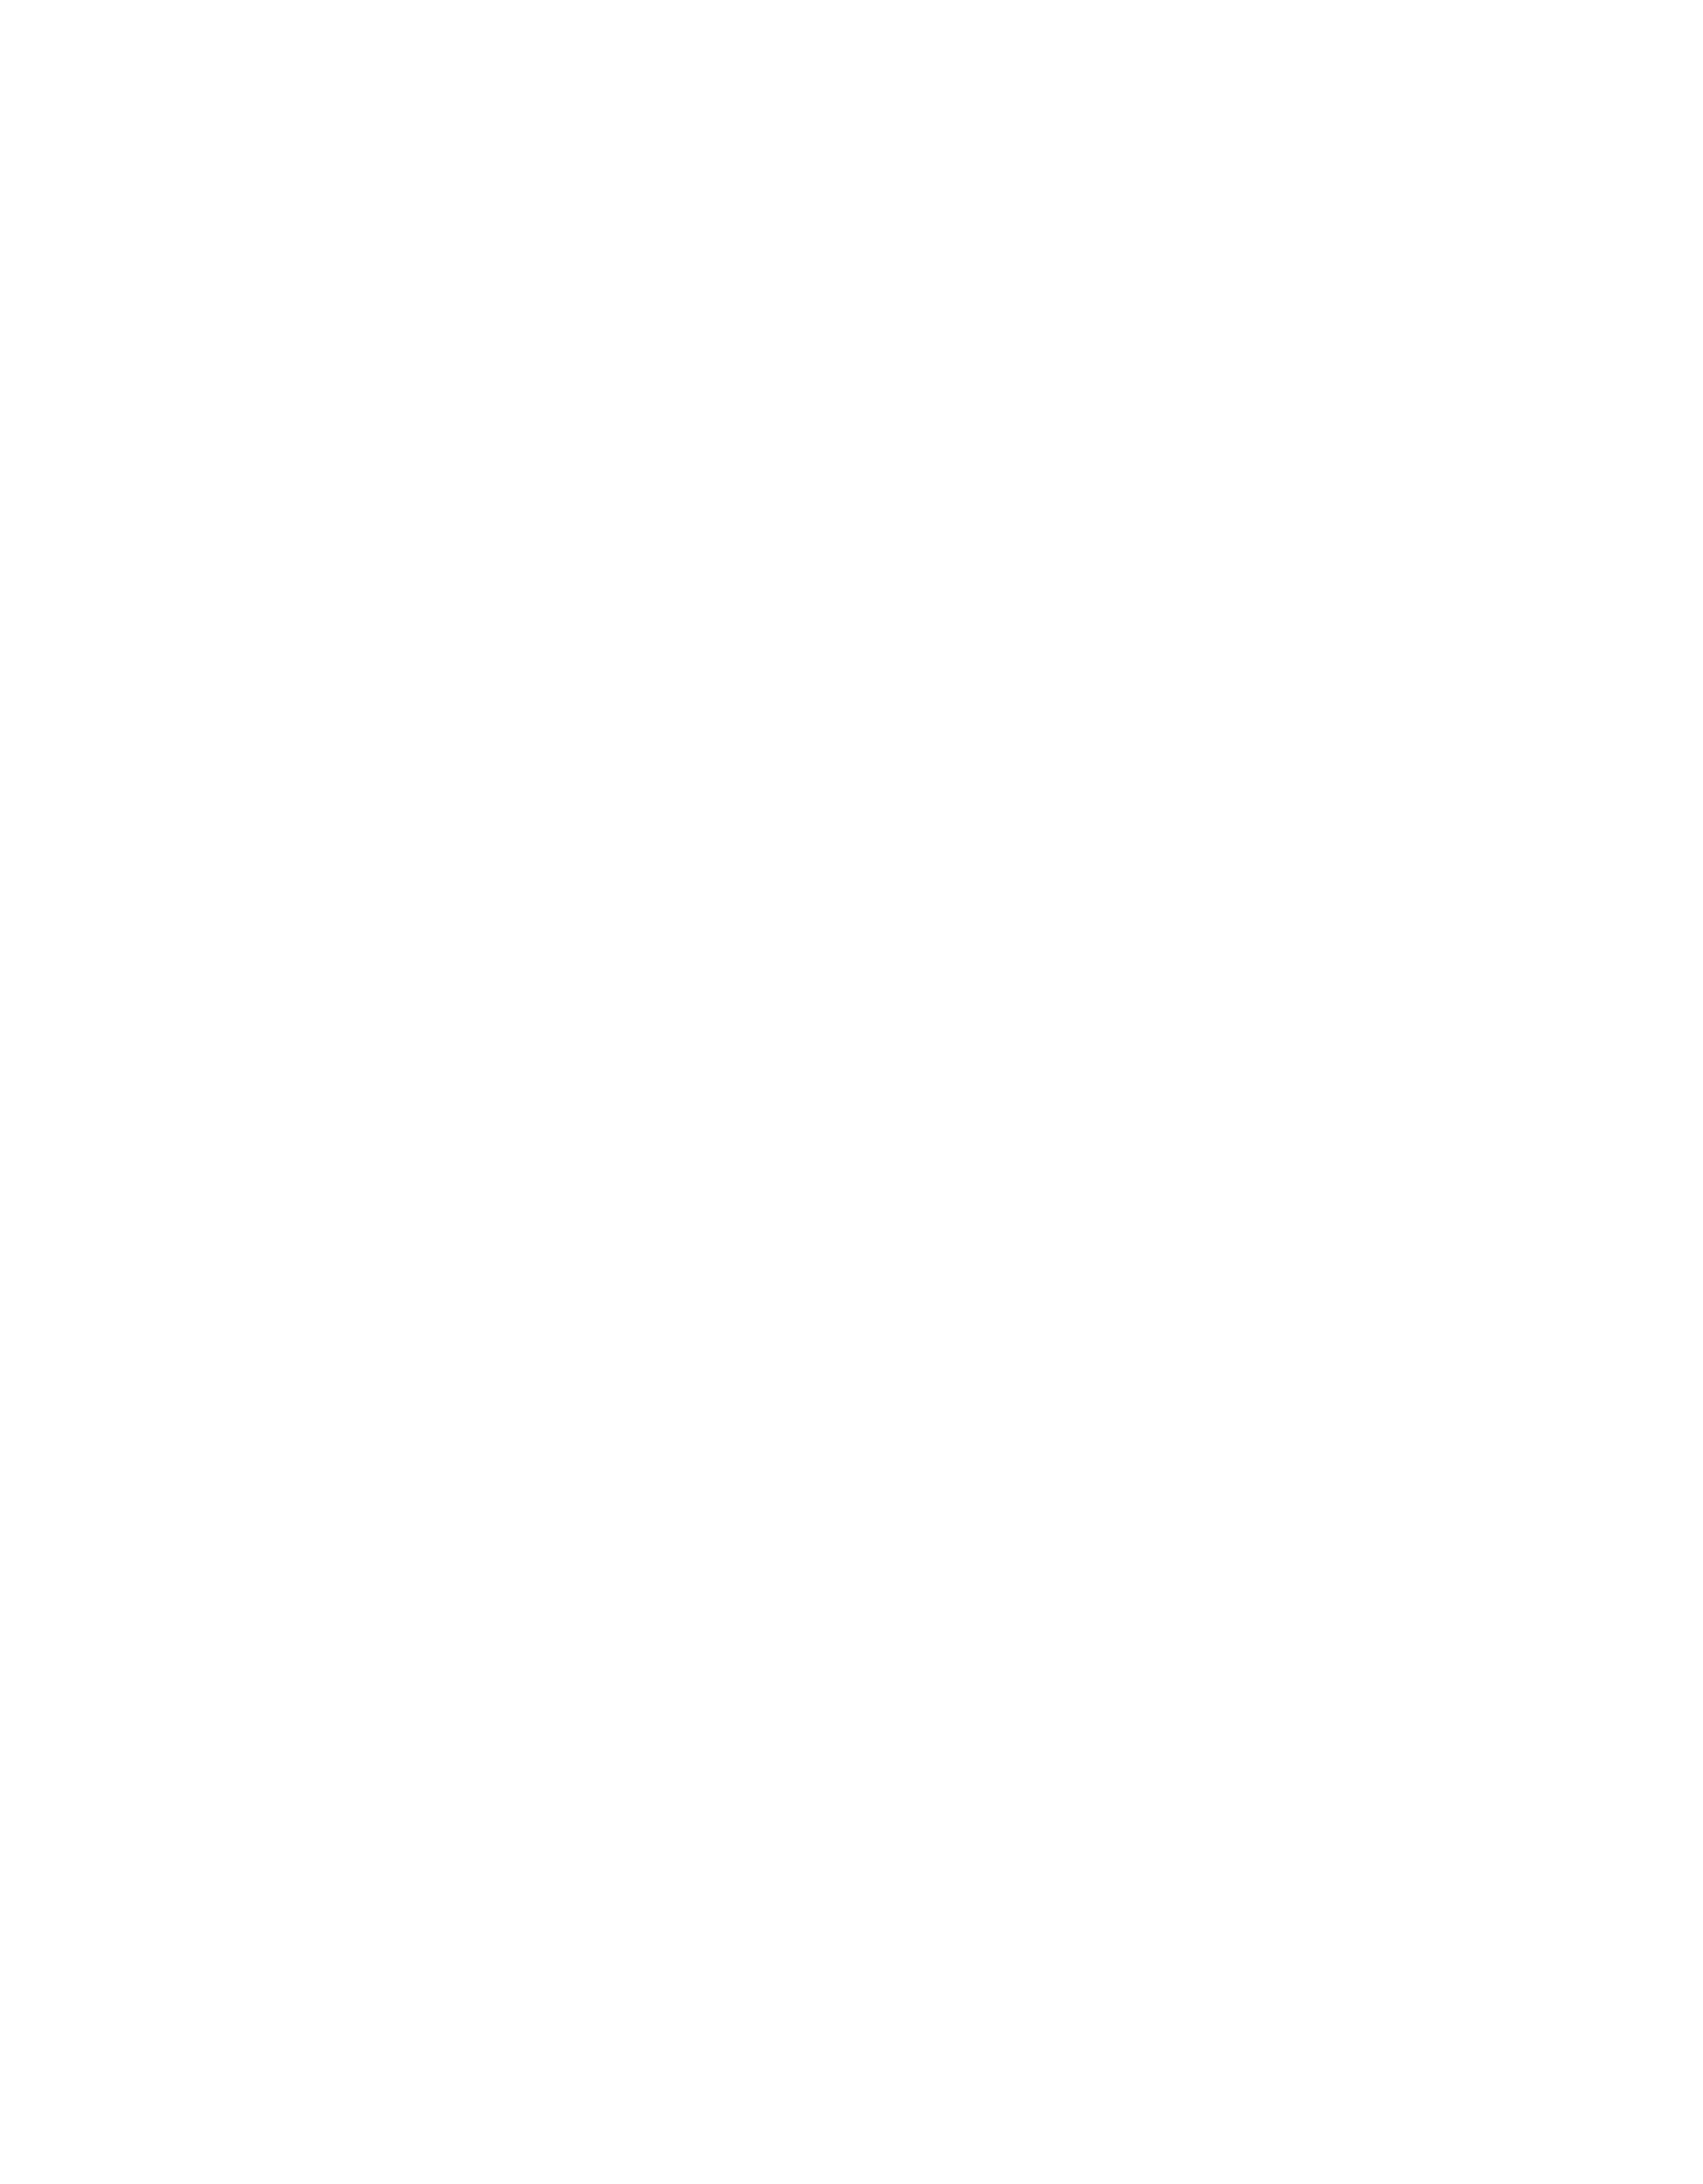 Tree in winter clipart silhouette picture black and white library Winter Tree Silhouette Transparent PNG Clip Art Image ... picture black and white library